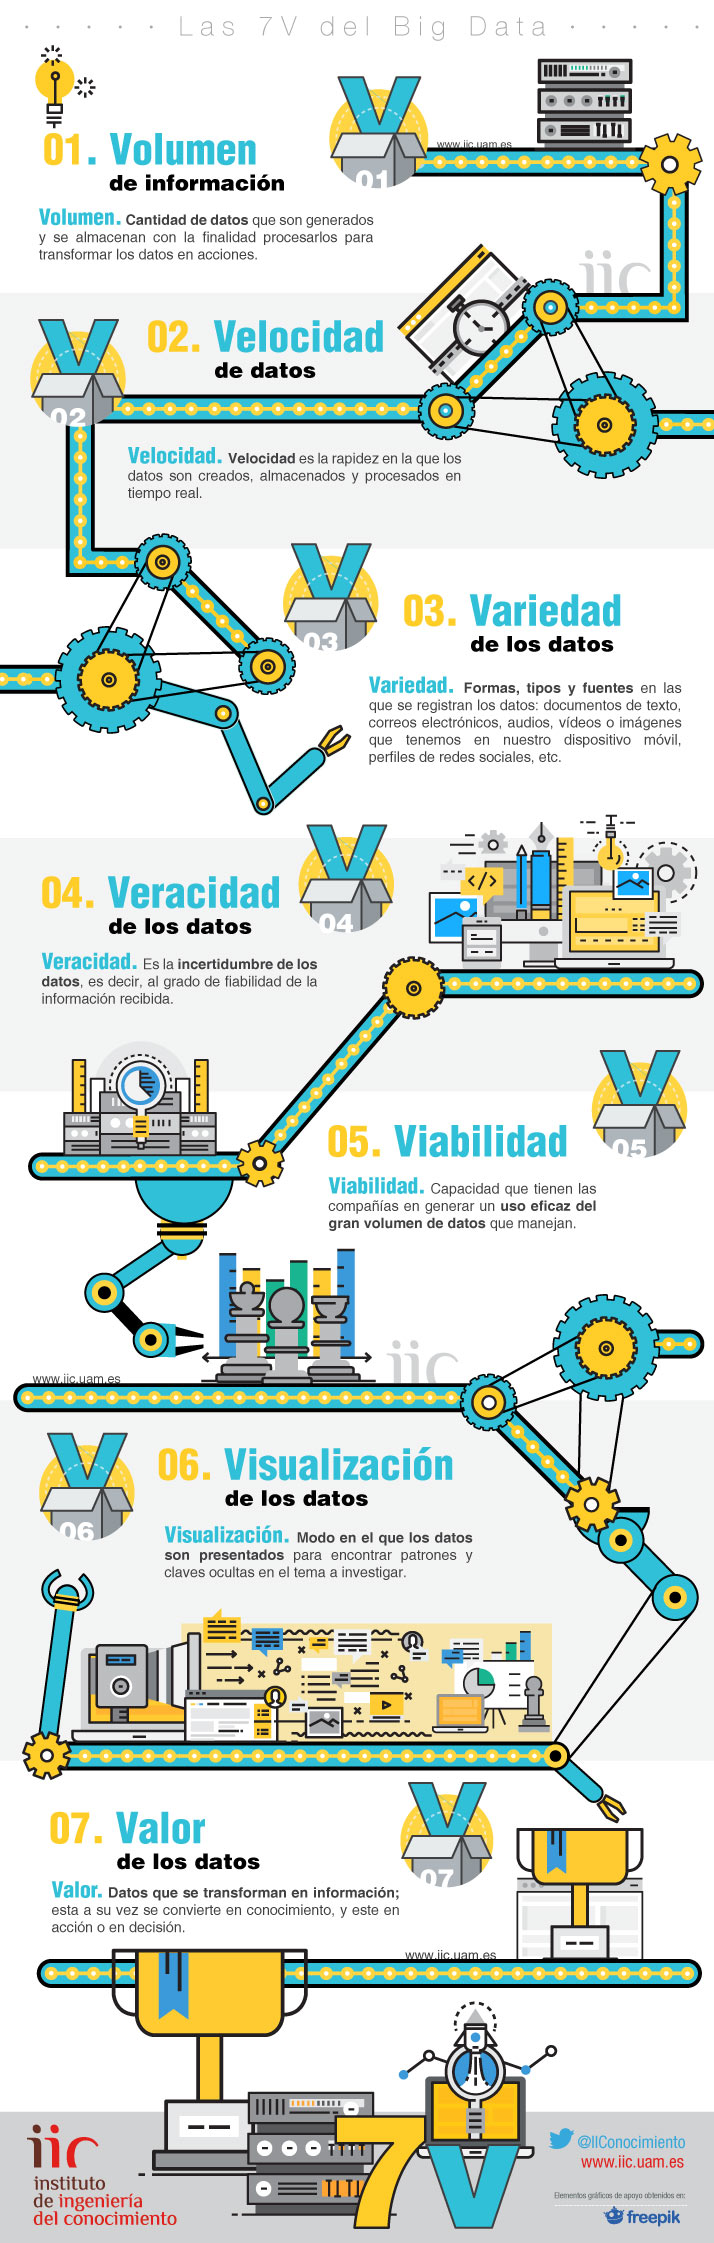 7-v-big-data-infografia-i-cloud-seven-blog